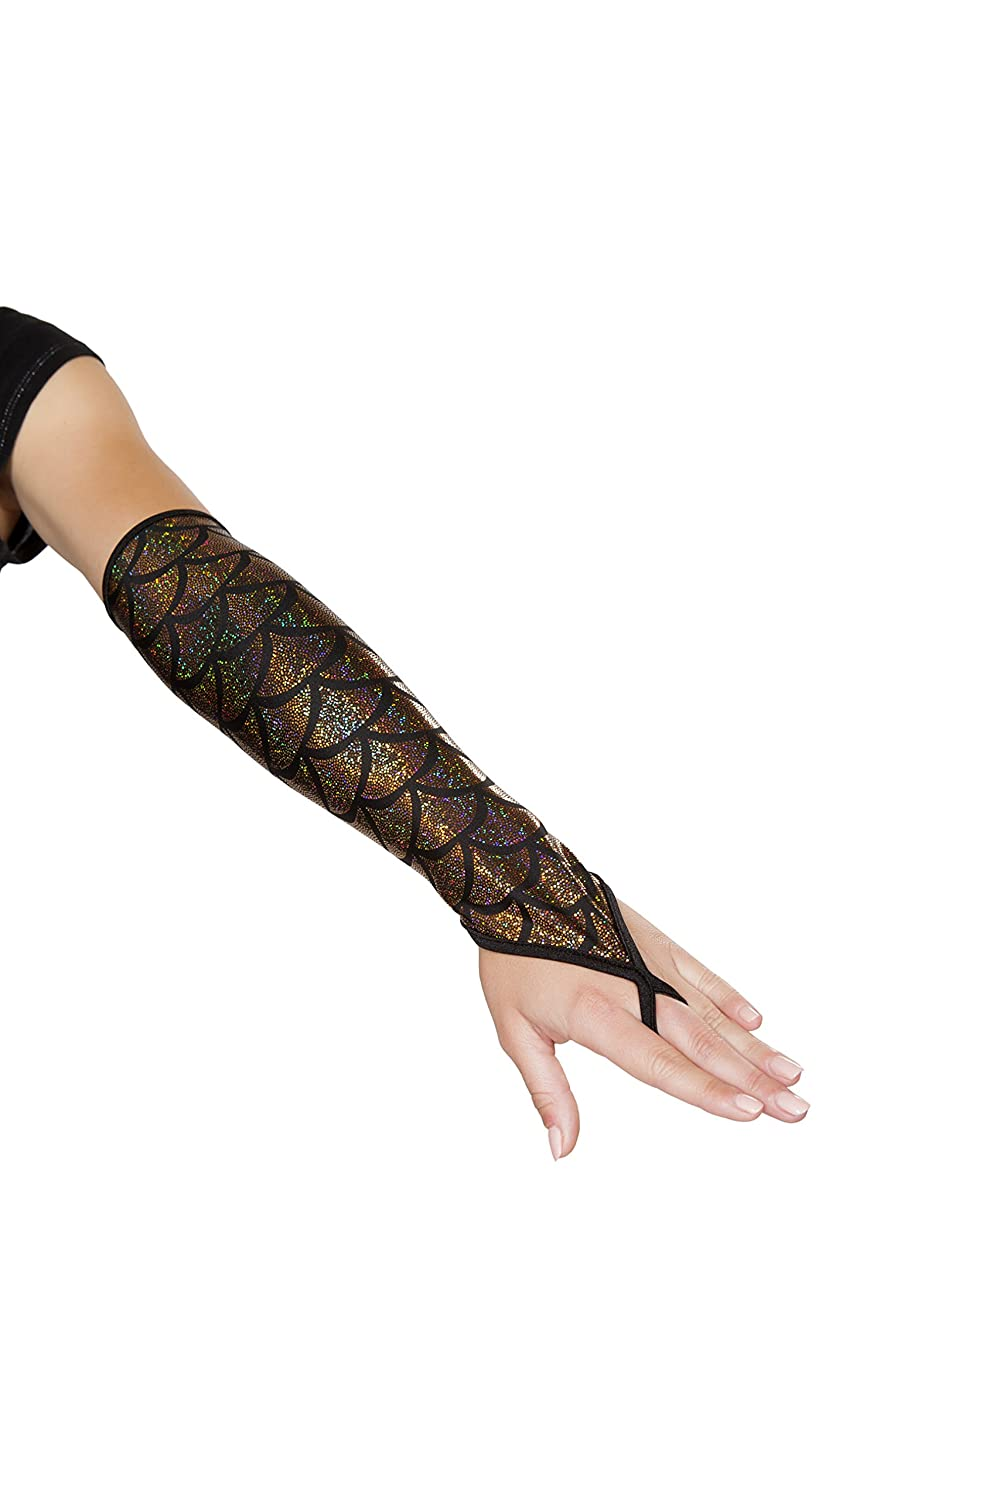 Iridescent Gold Mermaid Fingerless Elbow Length Gloves - DeluxeAdultCostumes.com